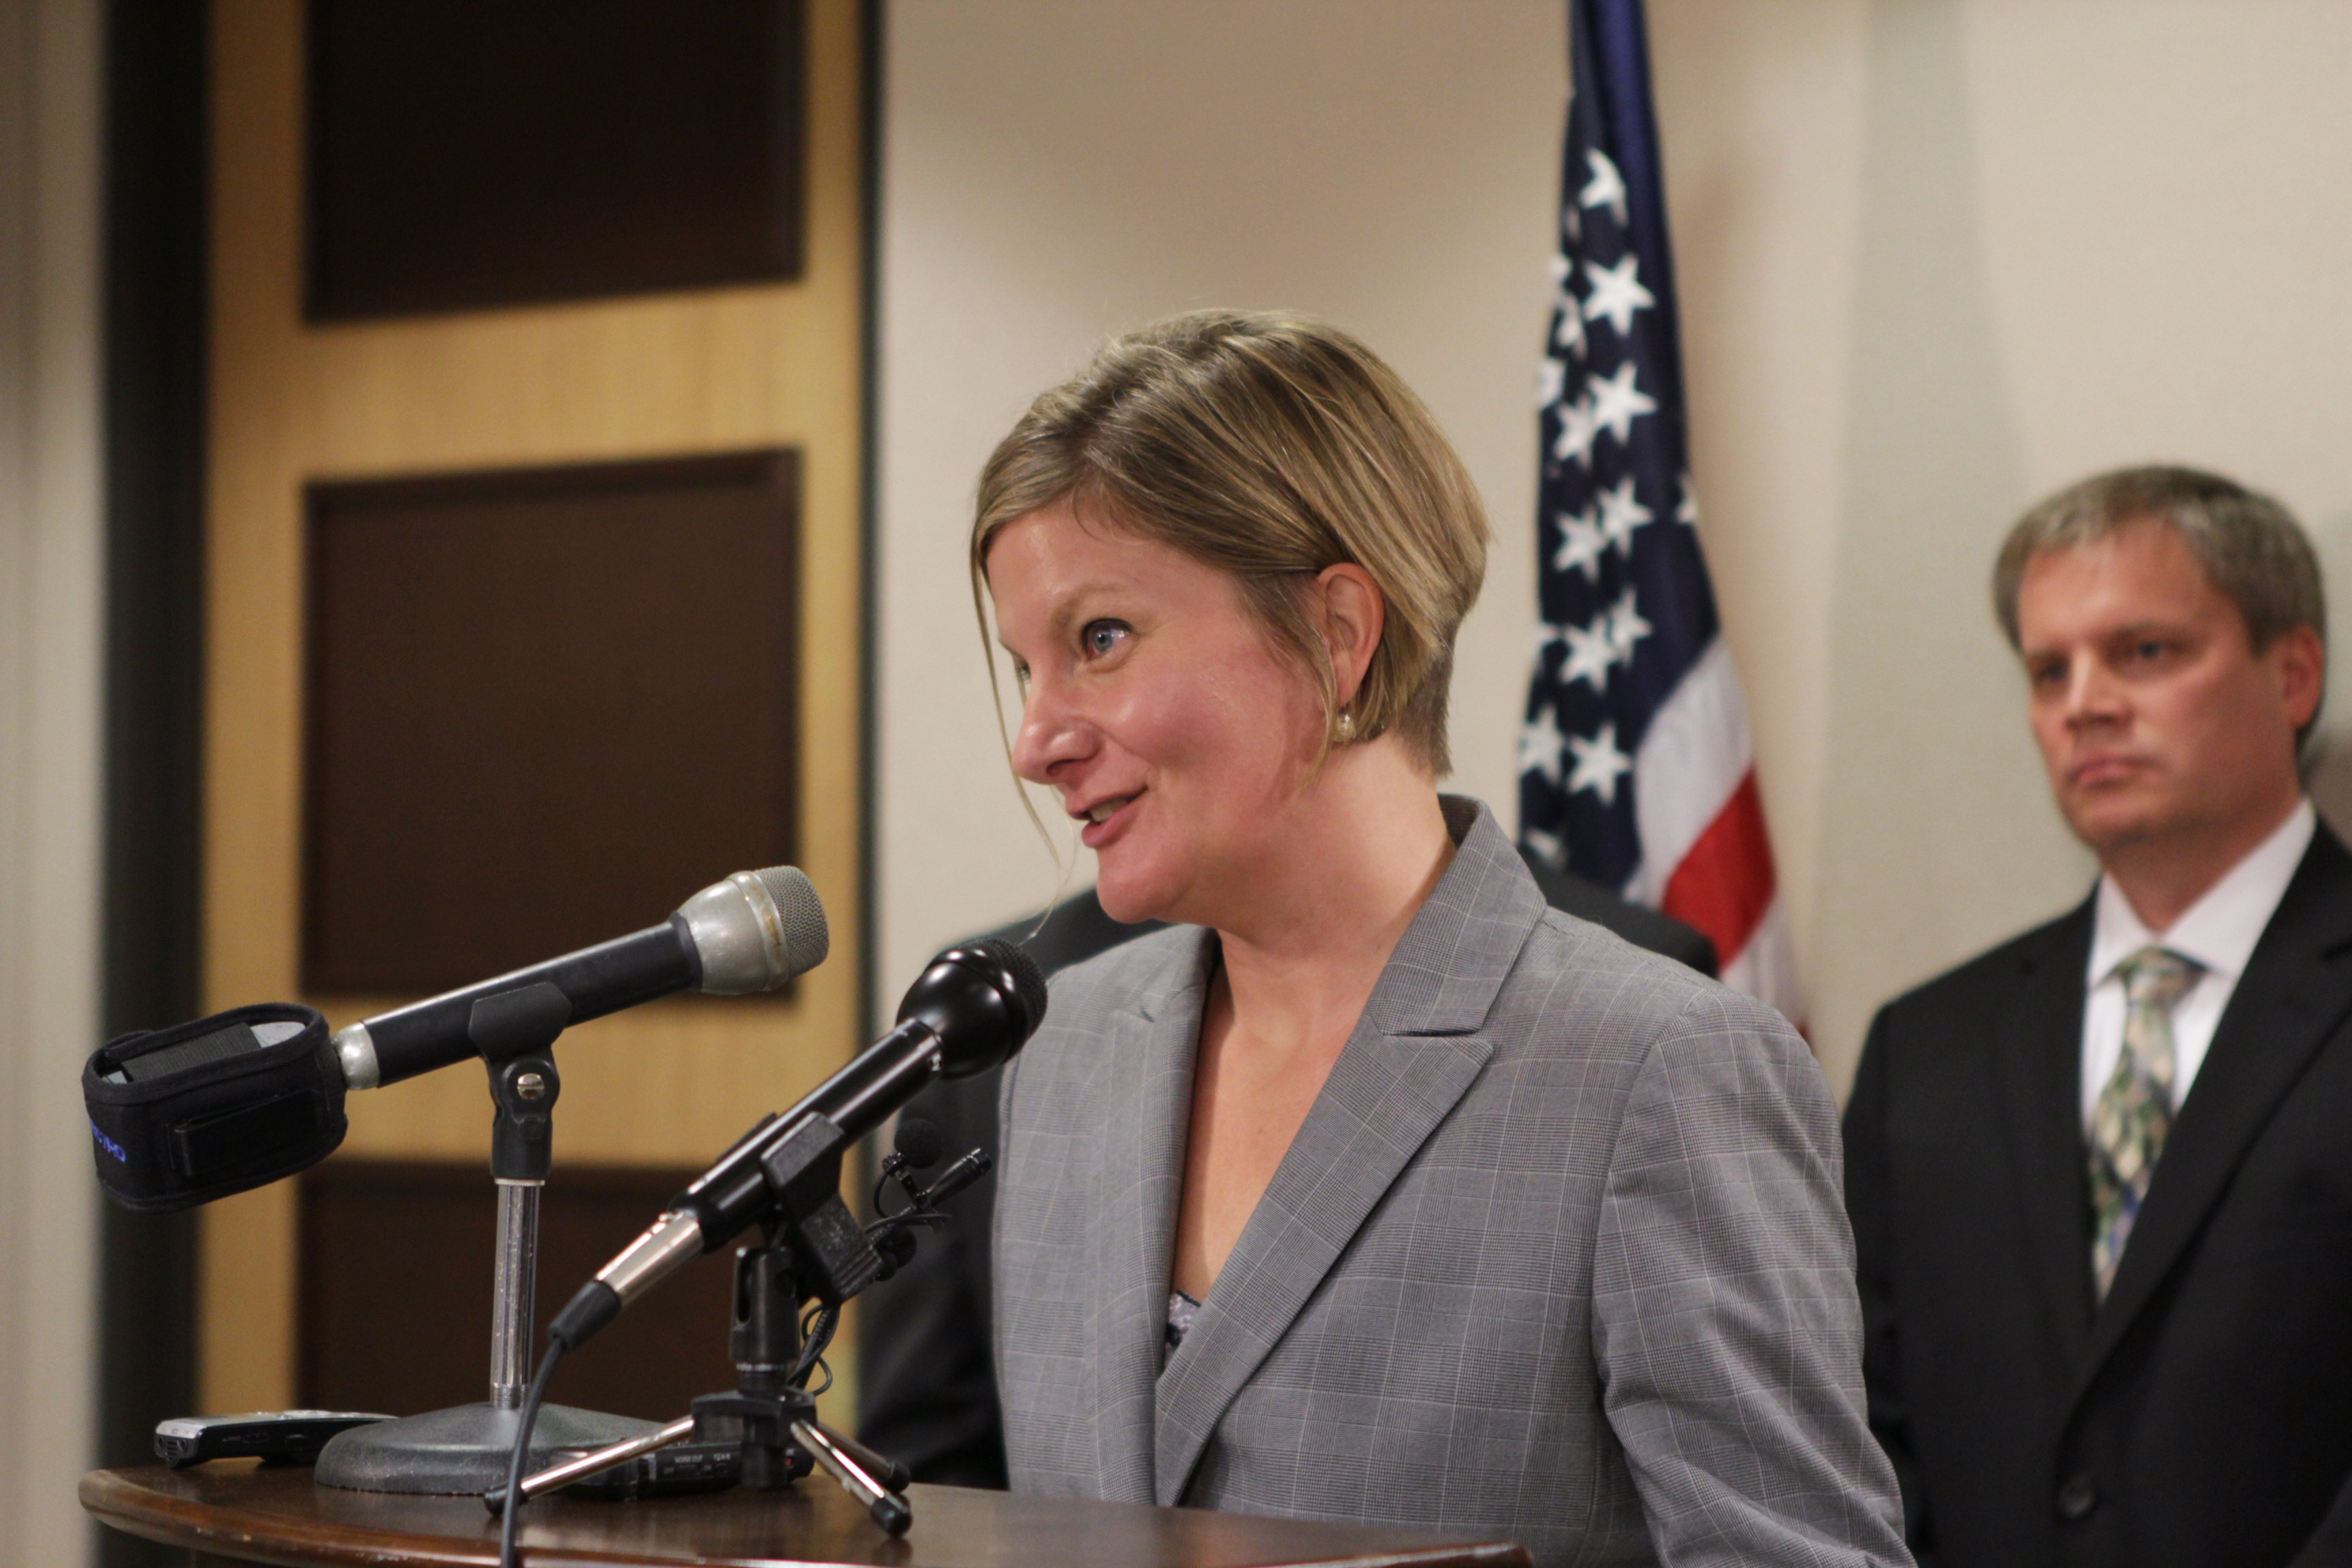 Jahna Lindemuth was named Alaska's attorney general by Gov. Bill Walker. (Photo by Graelyn Brashear/Alaska Public Media)